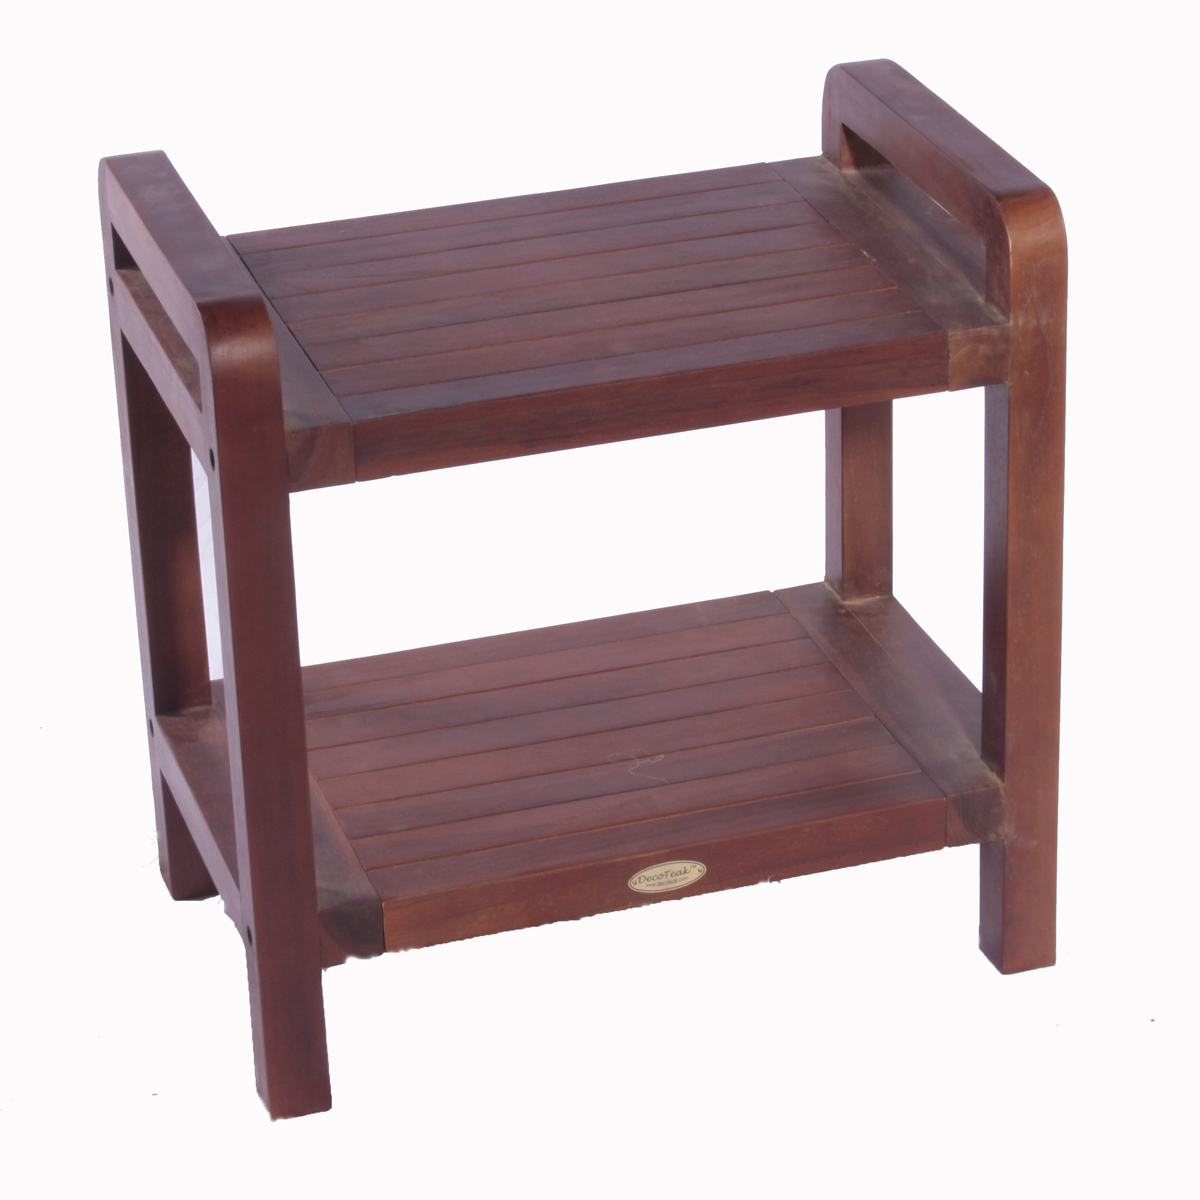 DT108 Classic Teak Shower Bench with Shelf and Arms